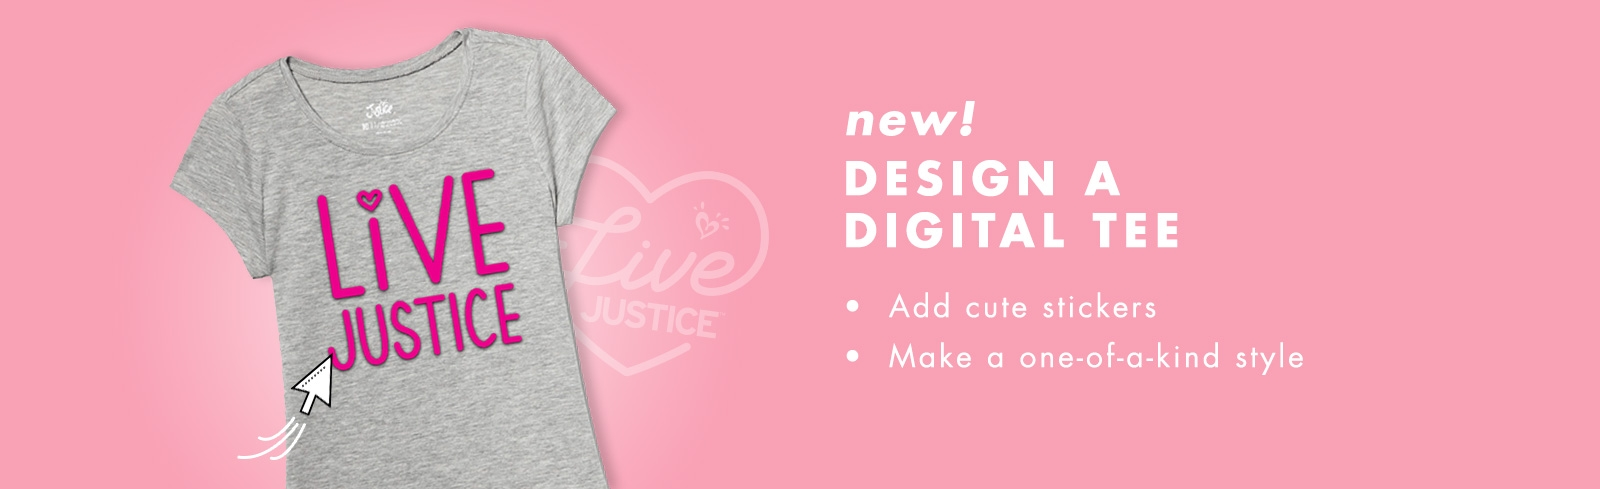 Design A Digital Tee